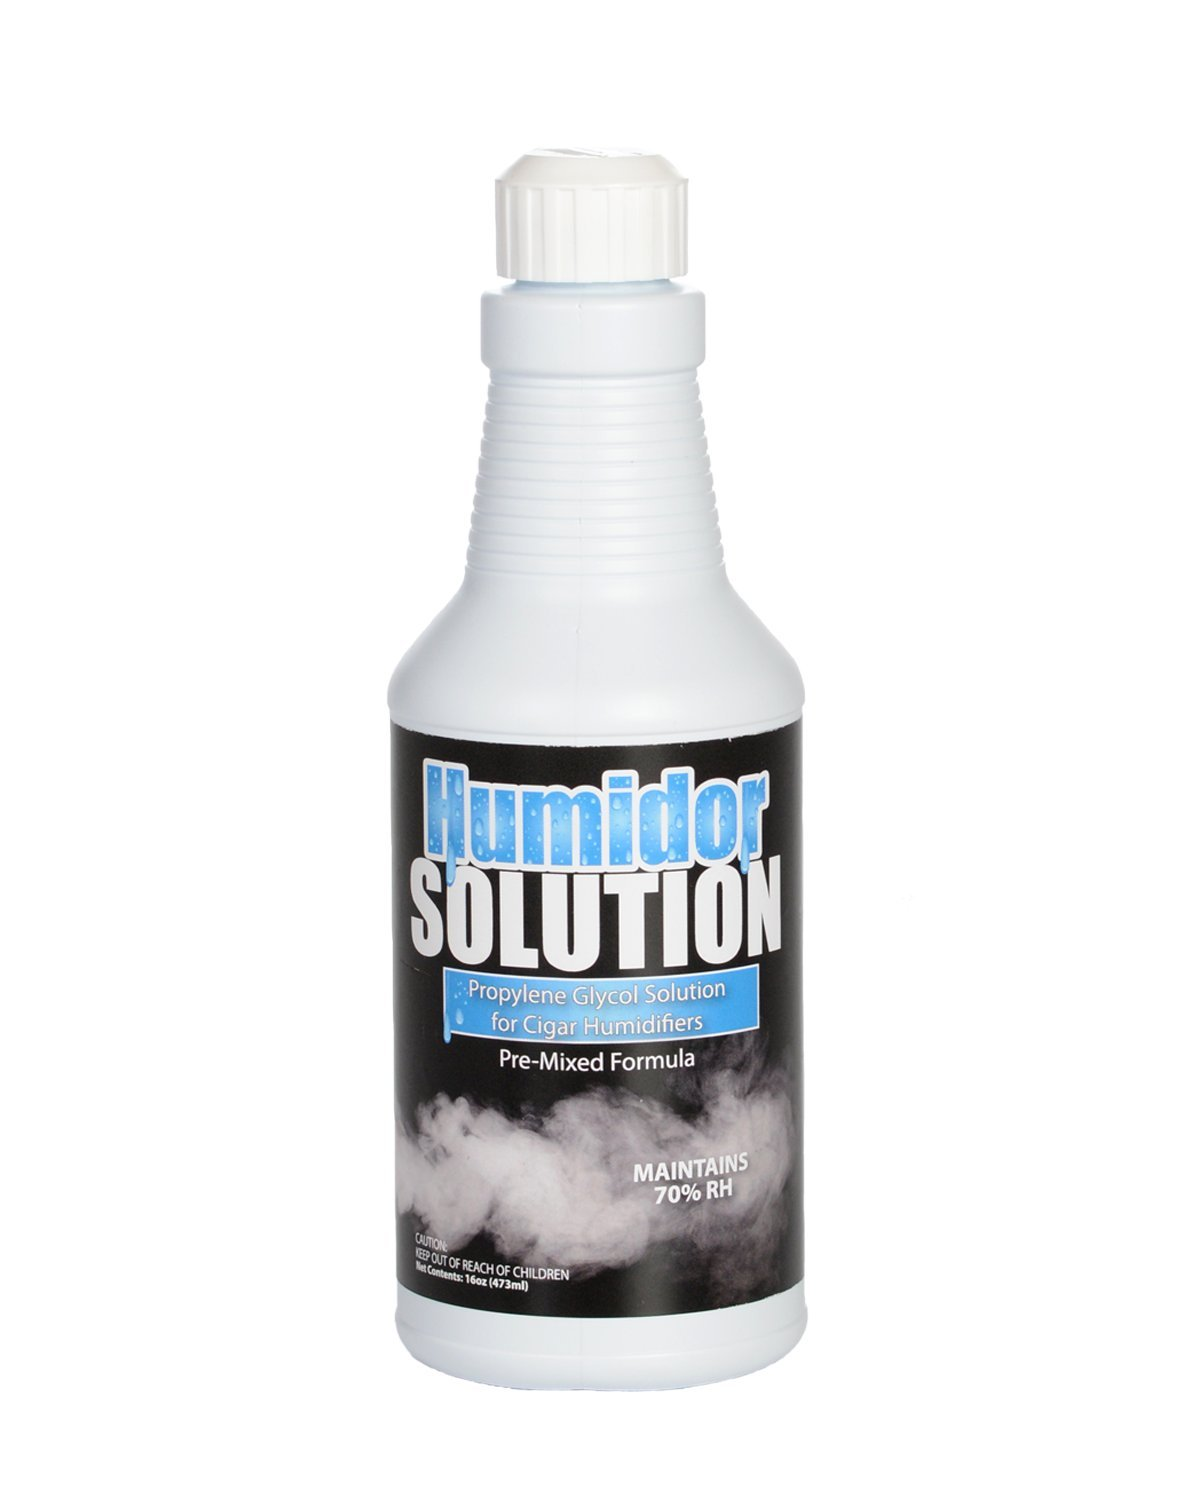 Cigar Humidor Solution - Pre-Mixed 50/50 Propylene Glycol for Humidifiers - 16oz Pint with Easy Pour Spout by Bluewater Chemgroup